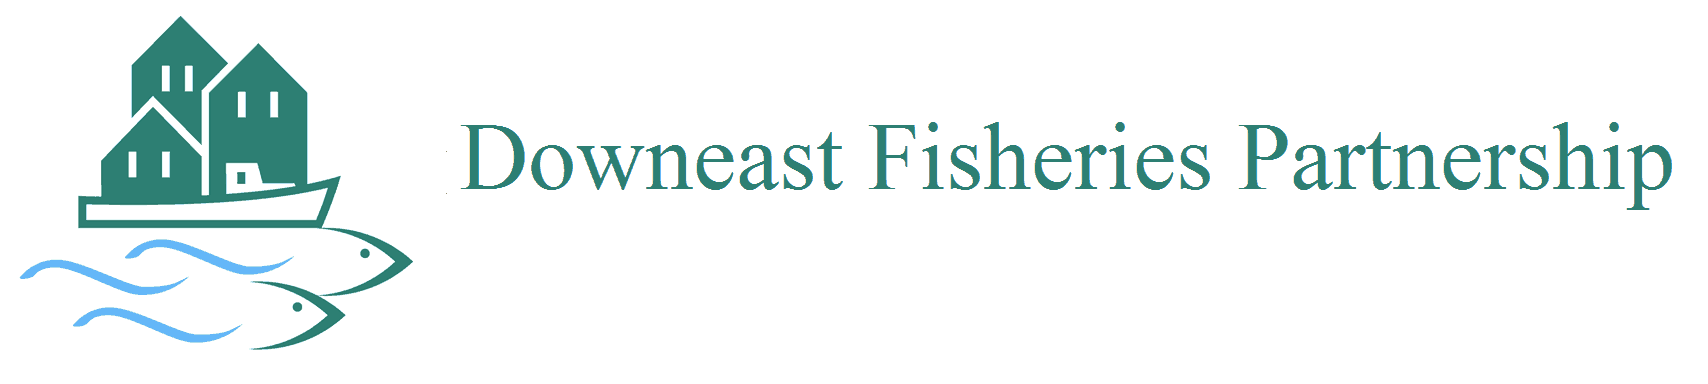 Downeast Fisheries Partnership